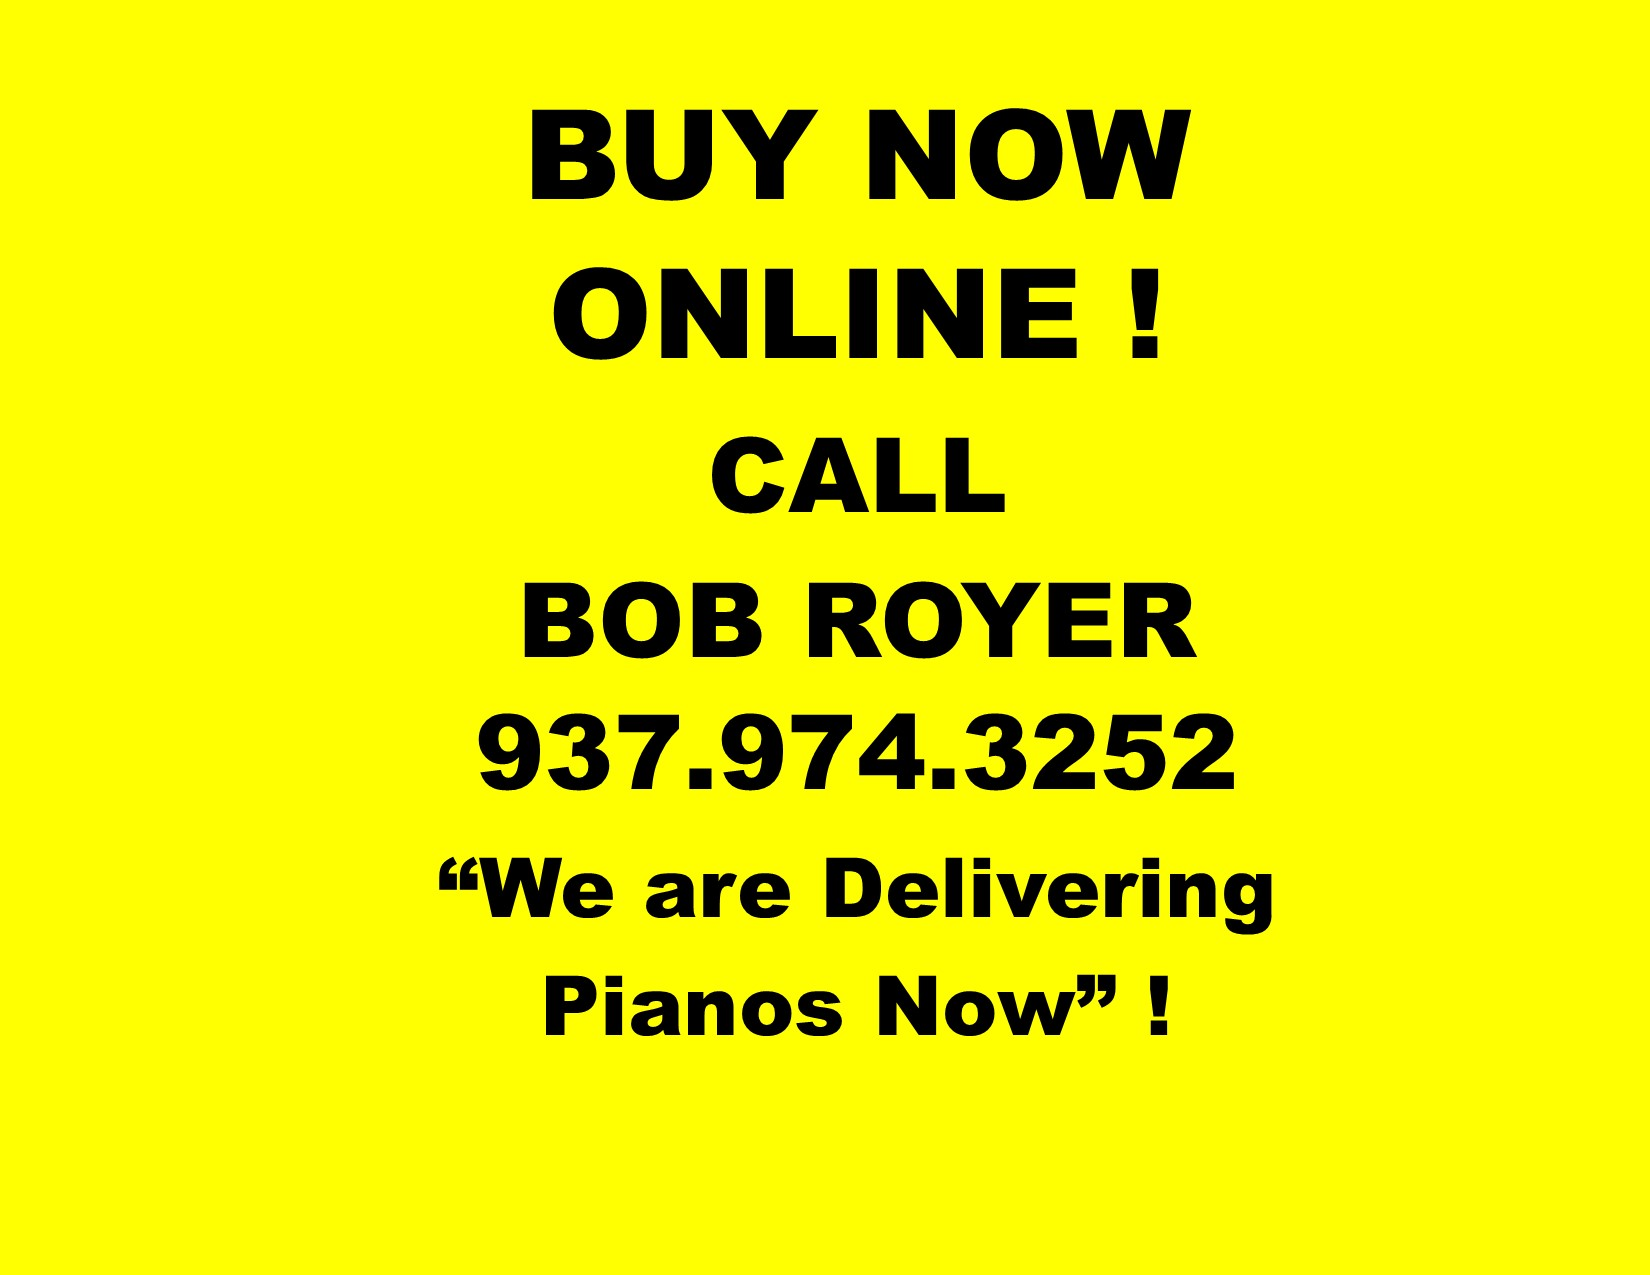 12261-BUY NOW ONLINE ! WE ARE DELIVERING PIANOS NOW !